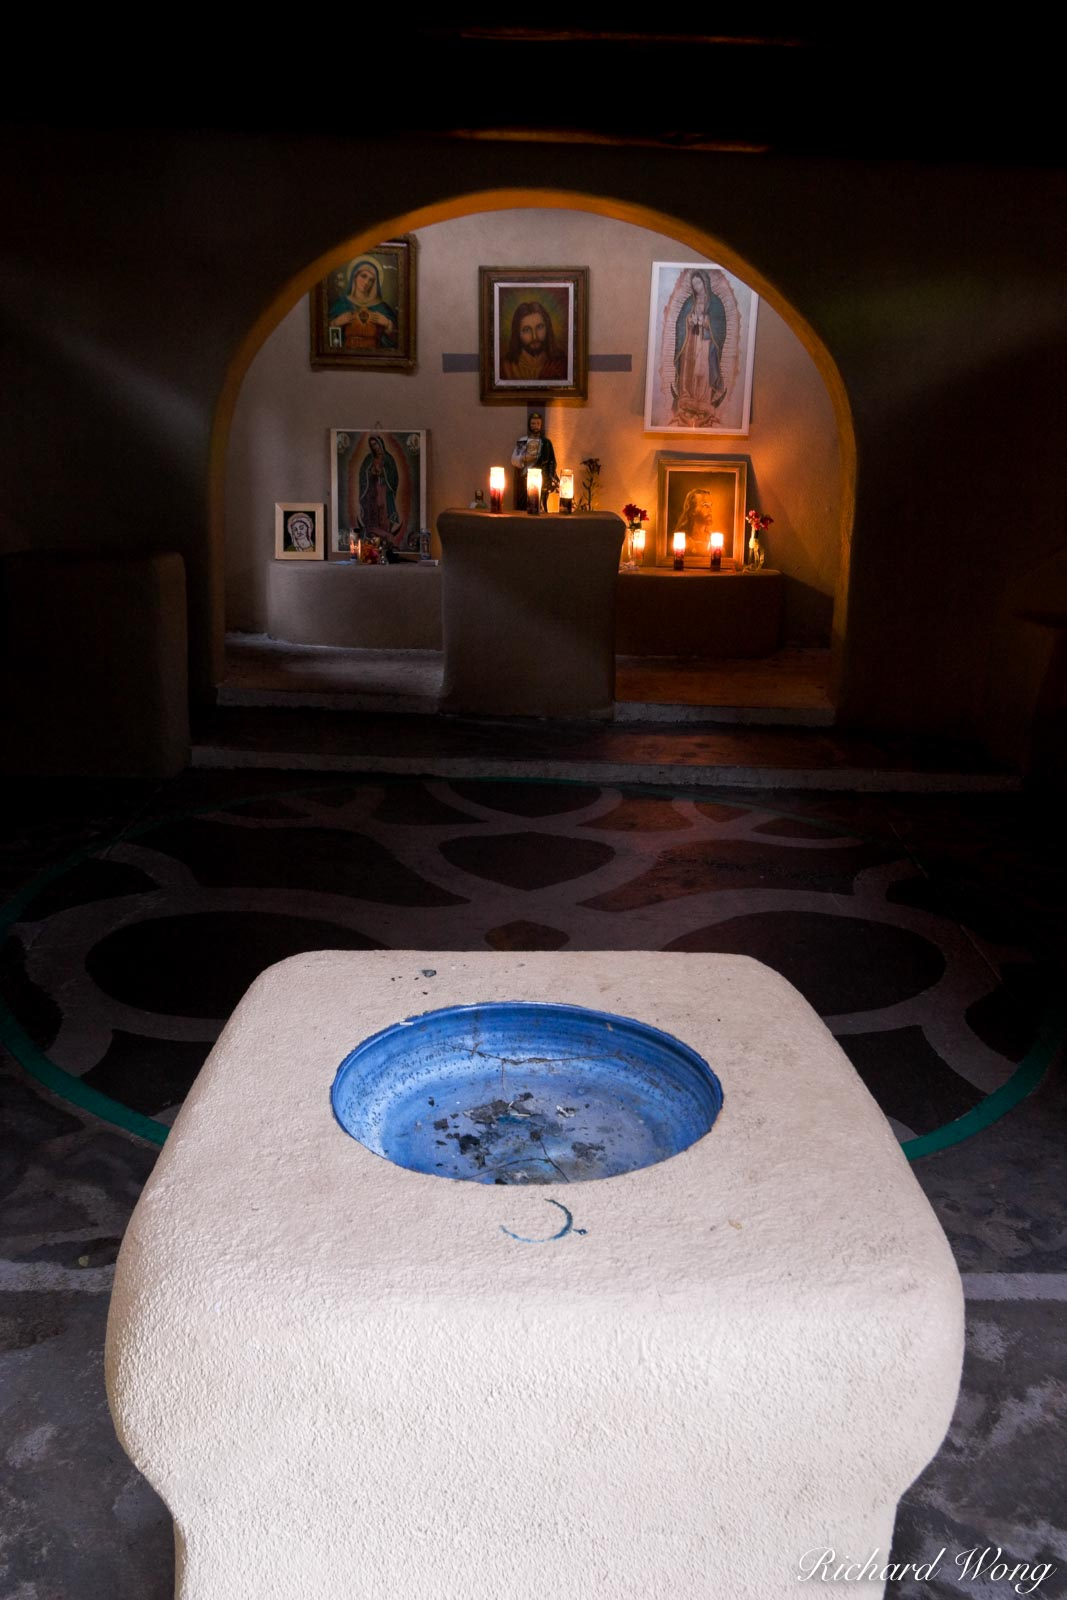 Capilla de Nuestra Senora de Guadalupe (Our Lady of Guadalupe Chapel) Interior at Old Town Plaza, Albuquerque, New Mexico, photo, photo